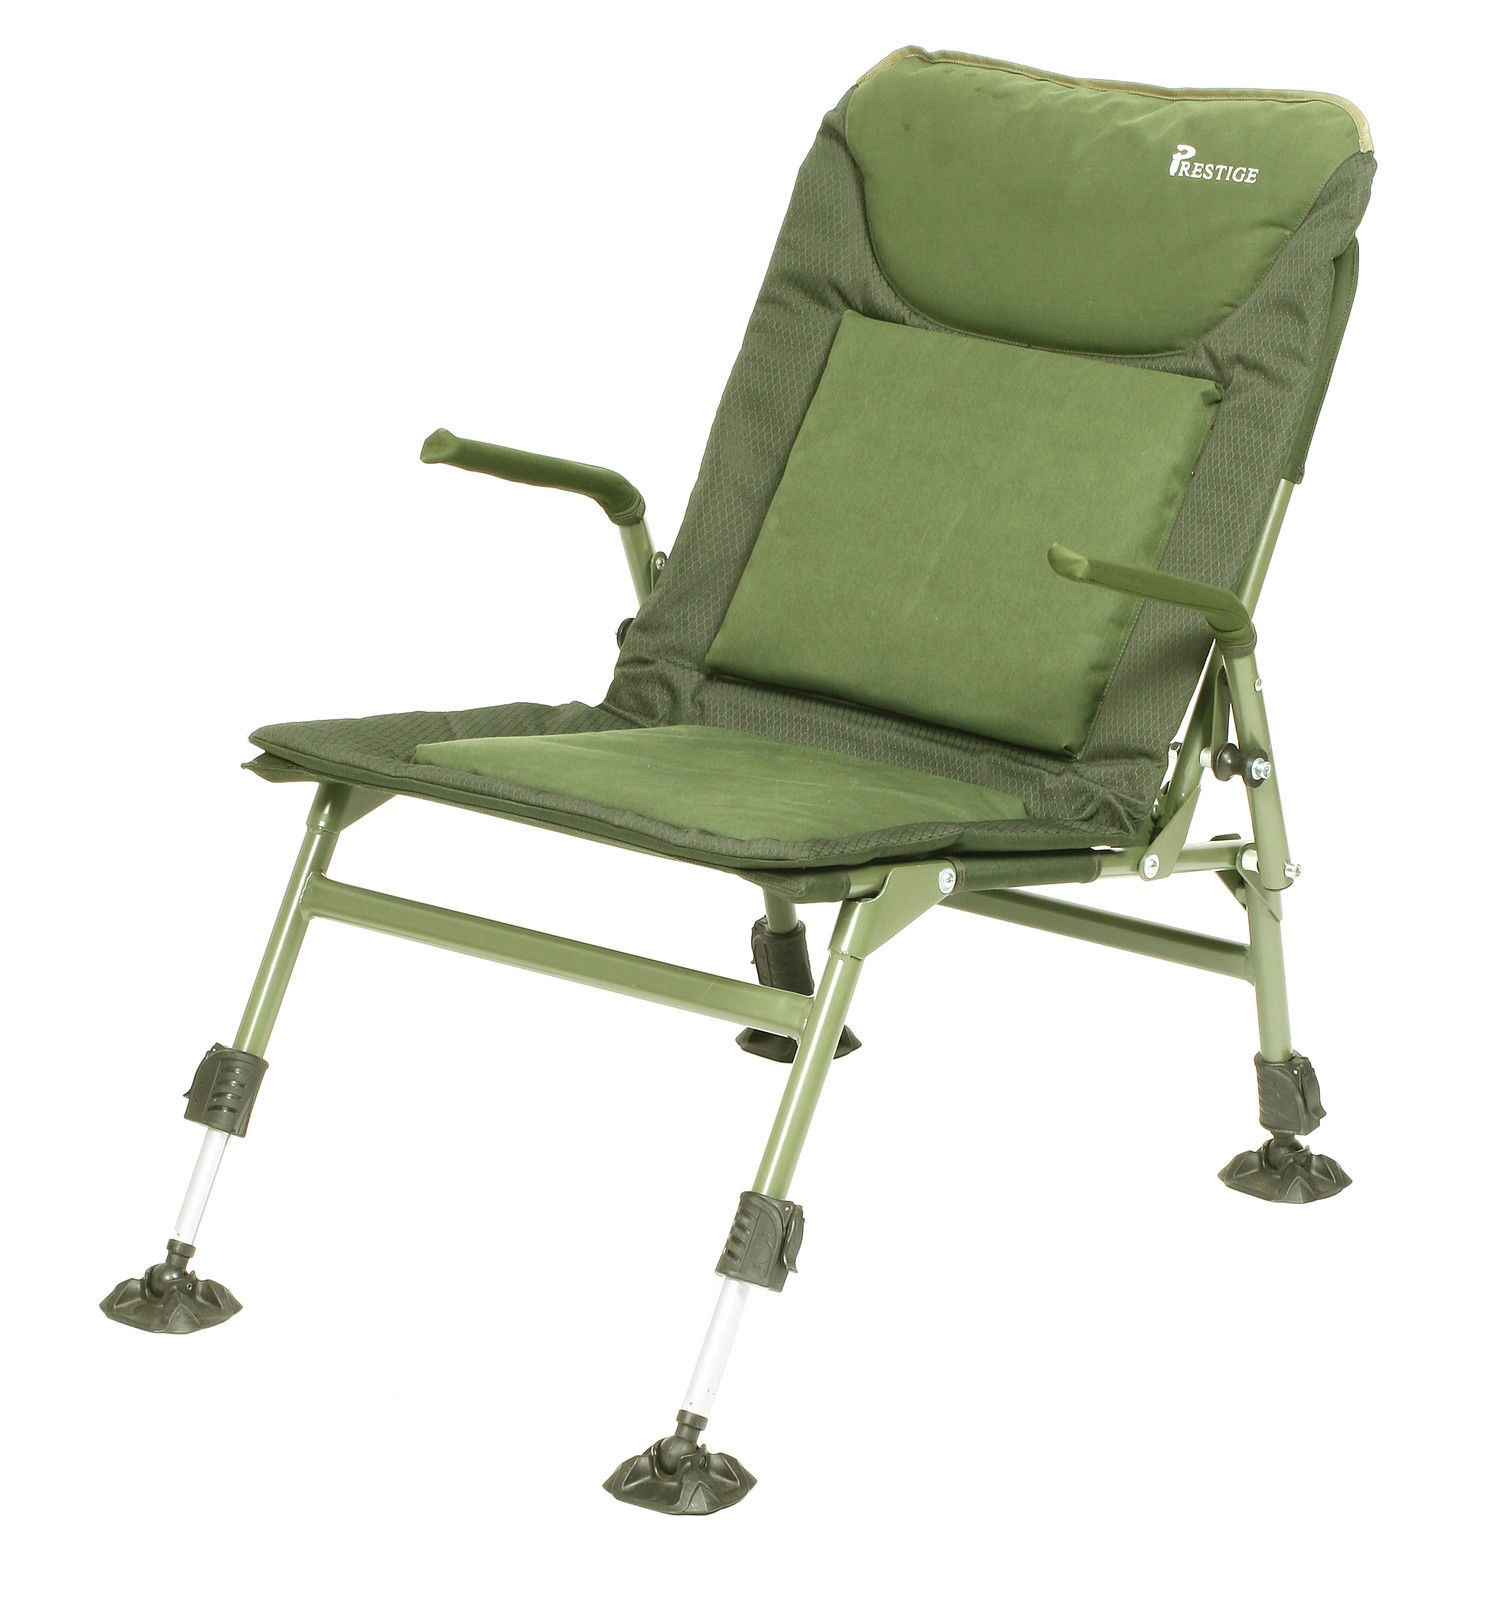 fishing chair with arms swivel height extender prestige lightweight folding arm